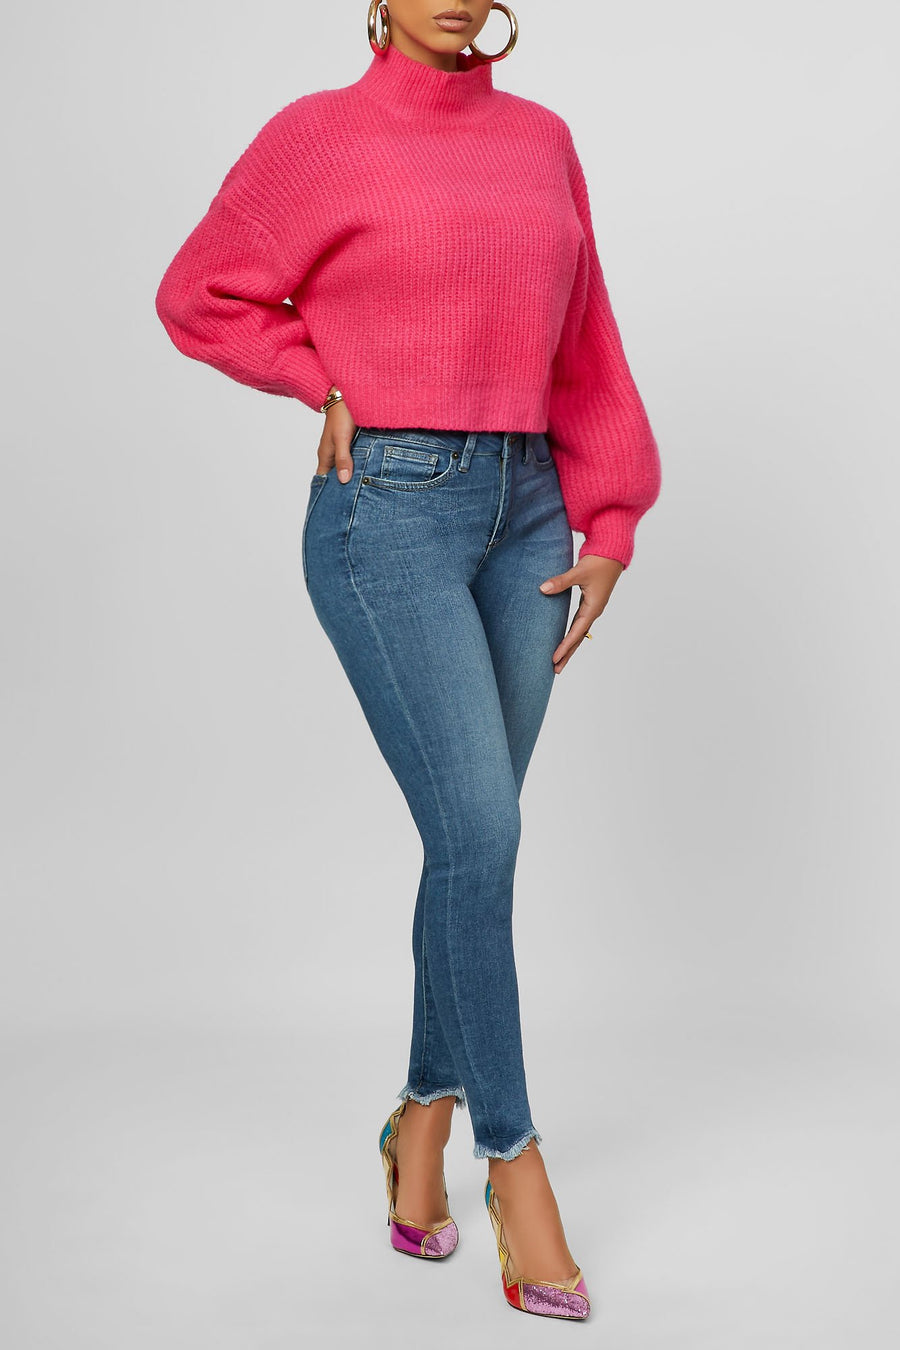 Next To Me Knit Sweater (Pink)